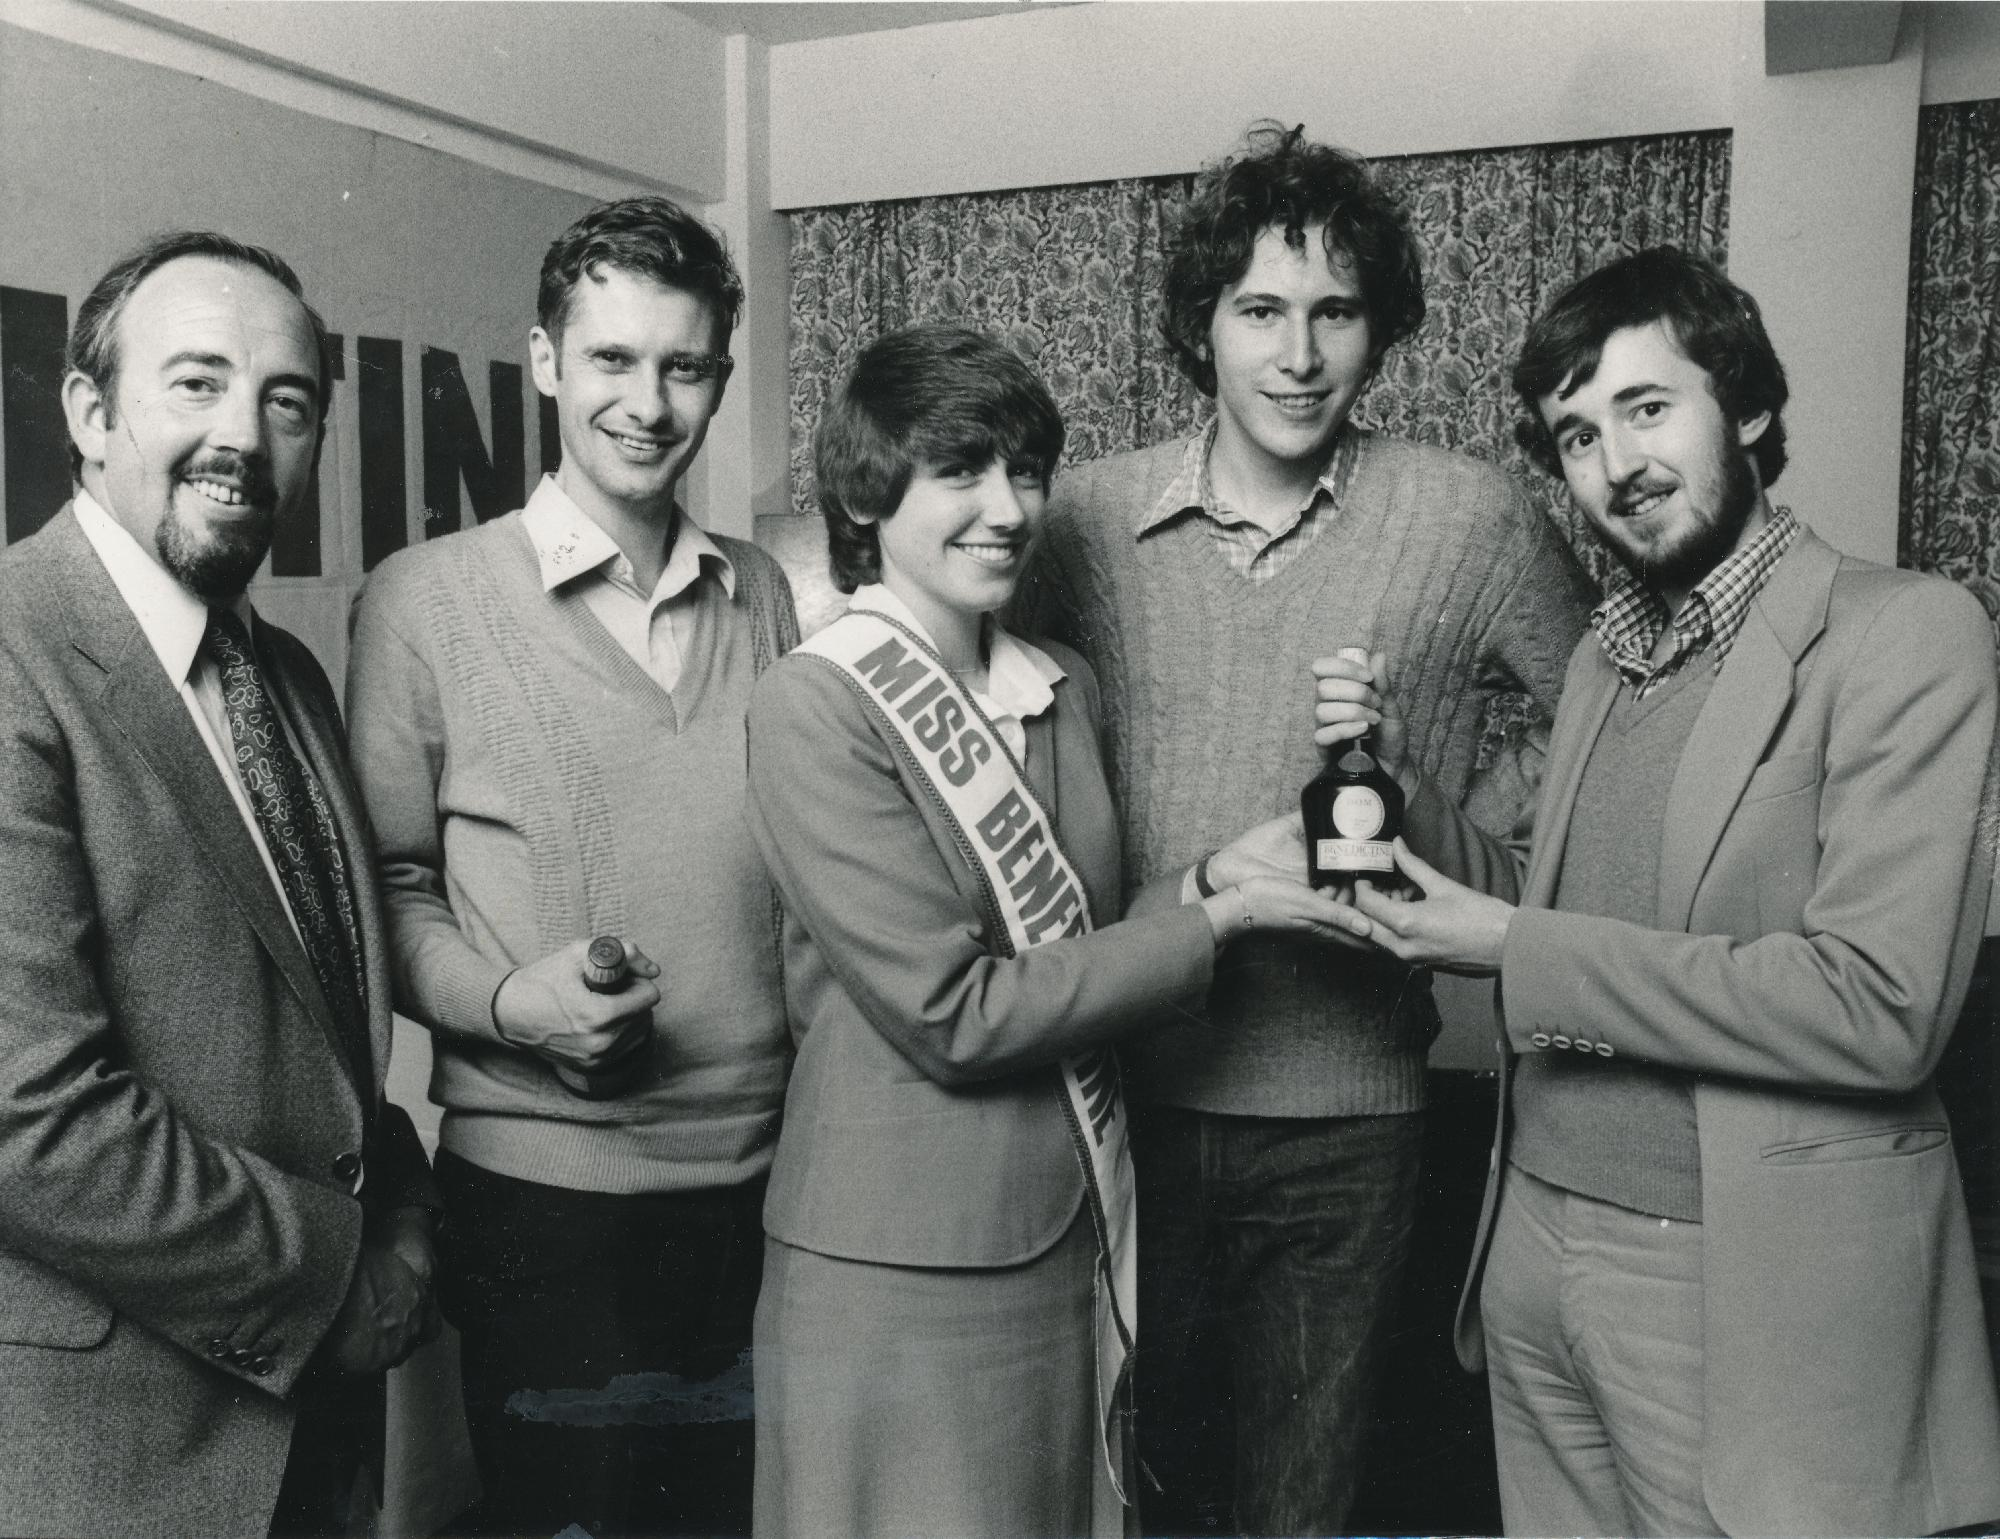 Nigel receives a much welcome prize (in Manchester) from Miss Benedictine in 198?